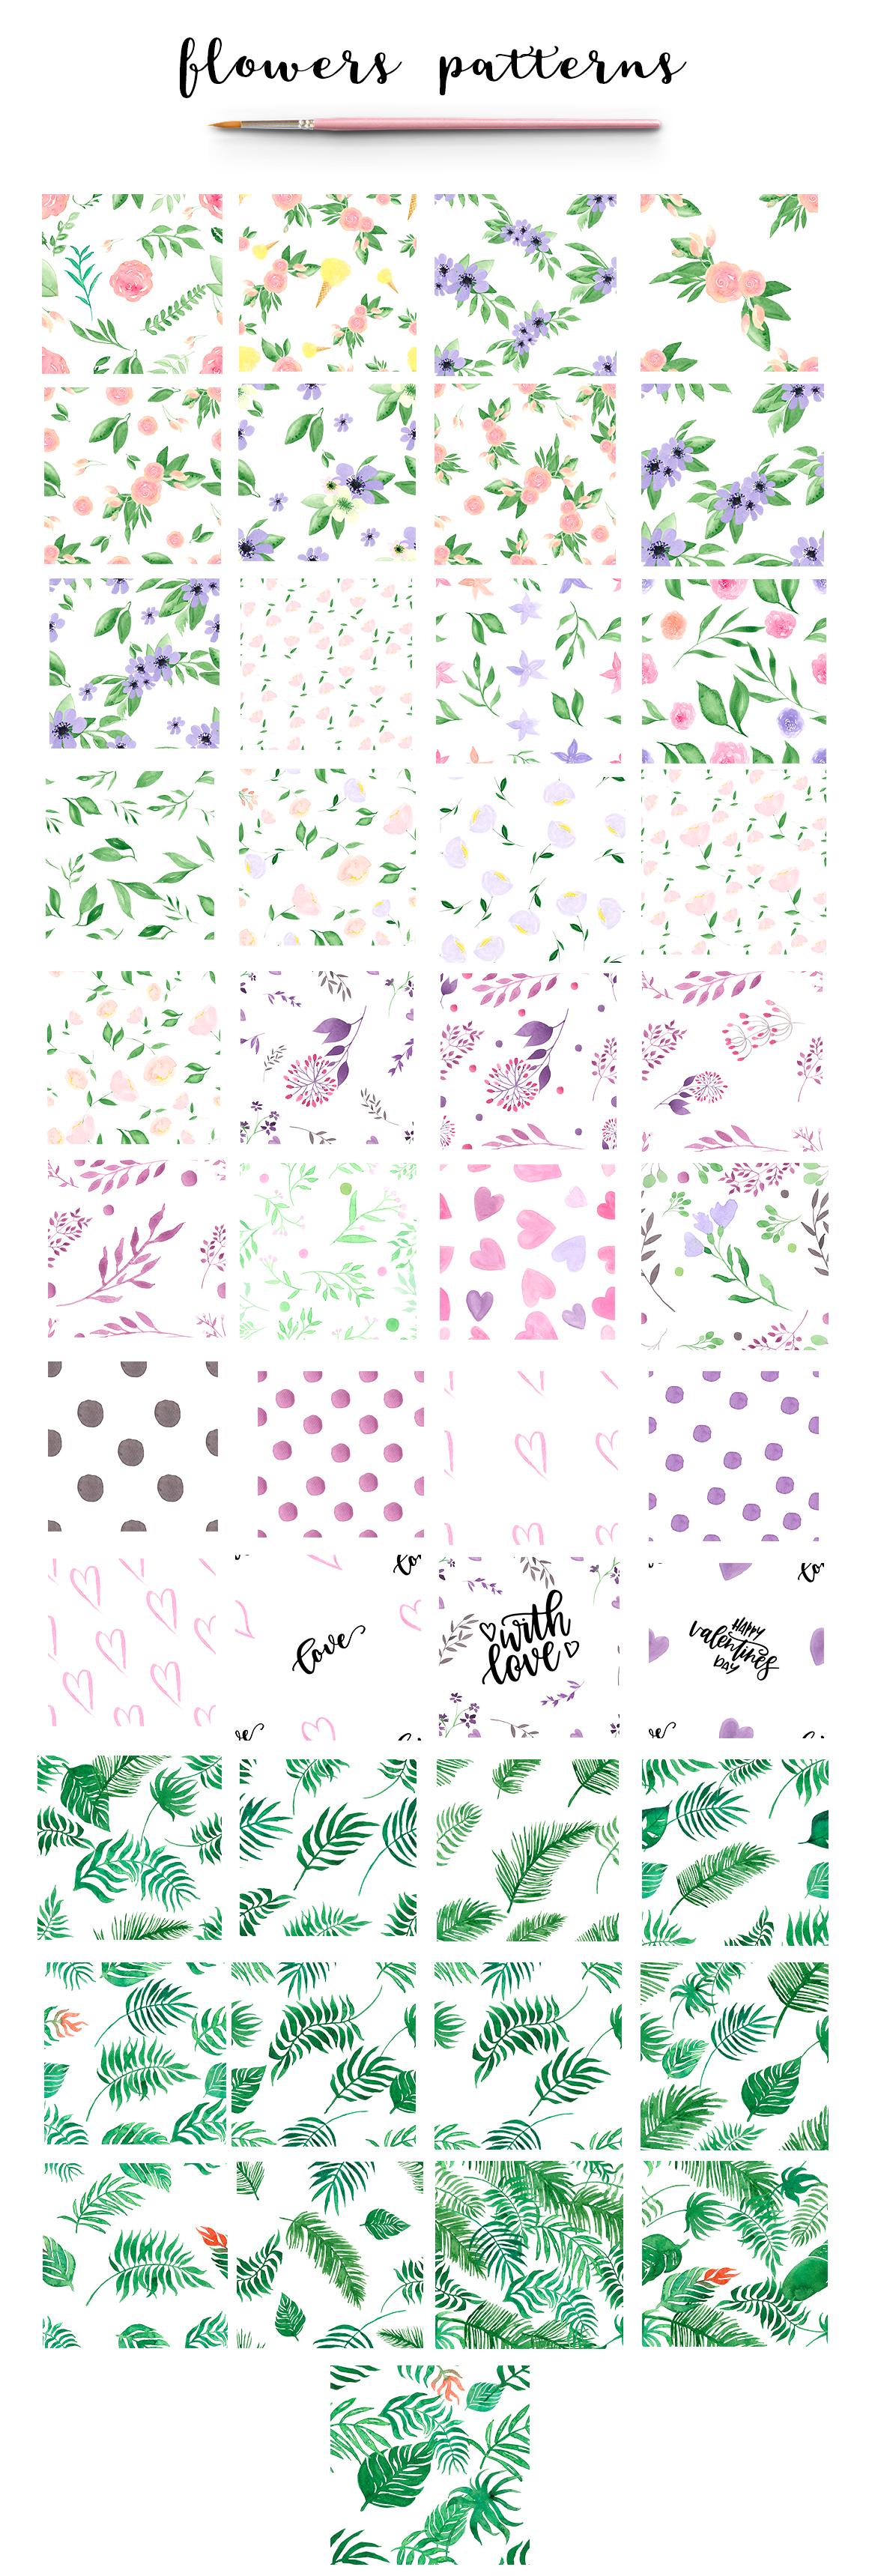 164 Watercolor FLORALS patterns example image 4